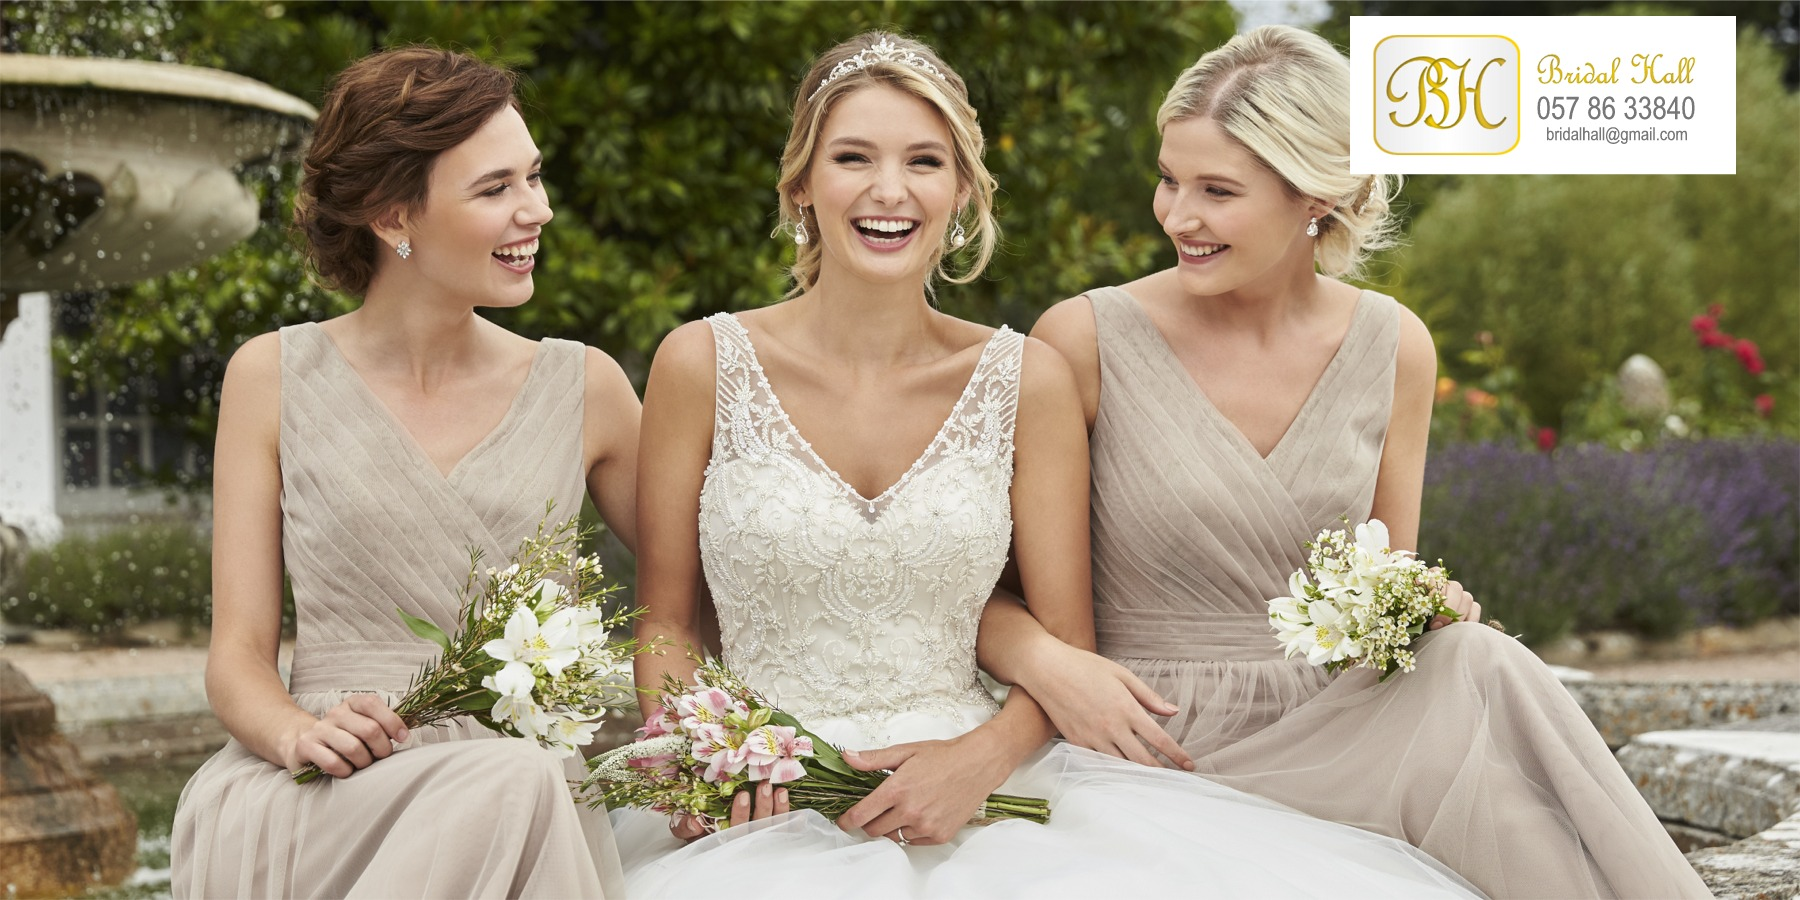 Bridal gowns, weddings dresses, bridesmaid dresses and accessories from Bridal Hall, Ballybrittas, County Laois, Midlands, Ireland